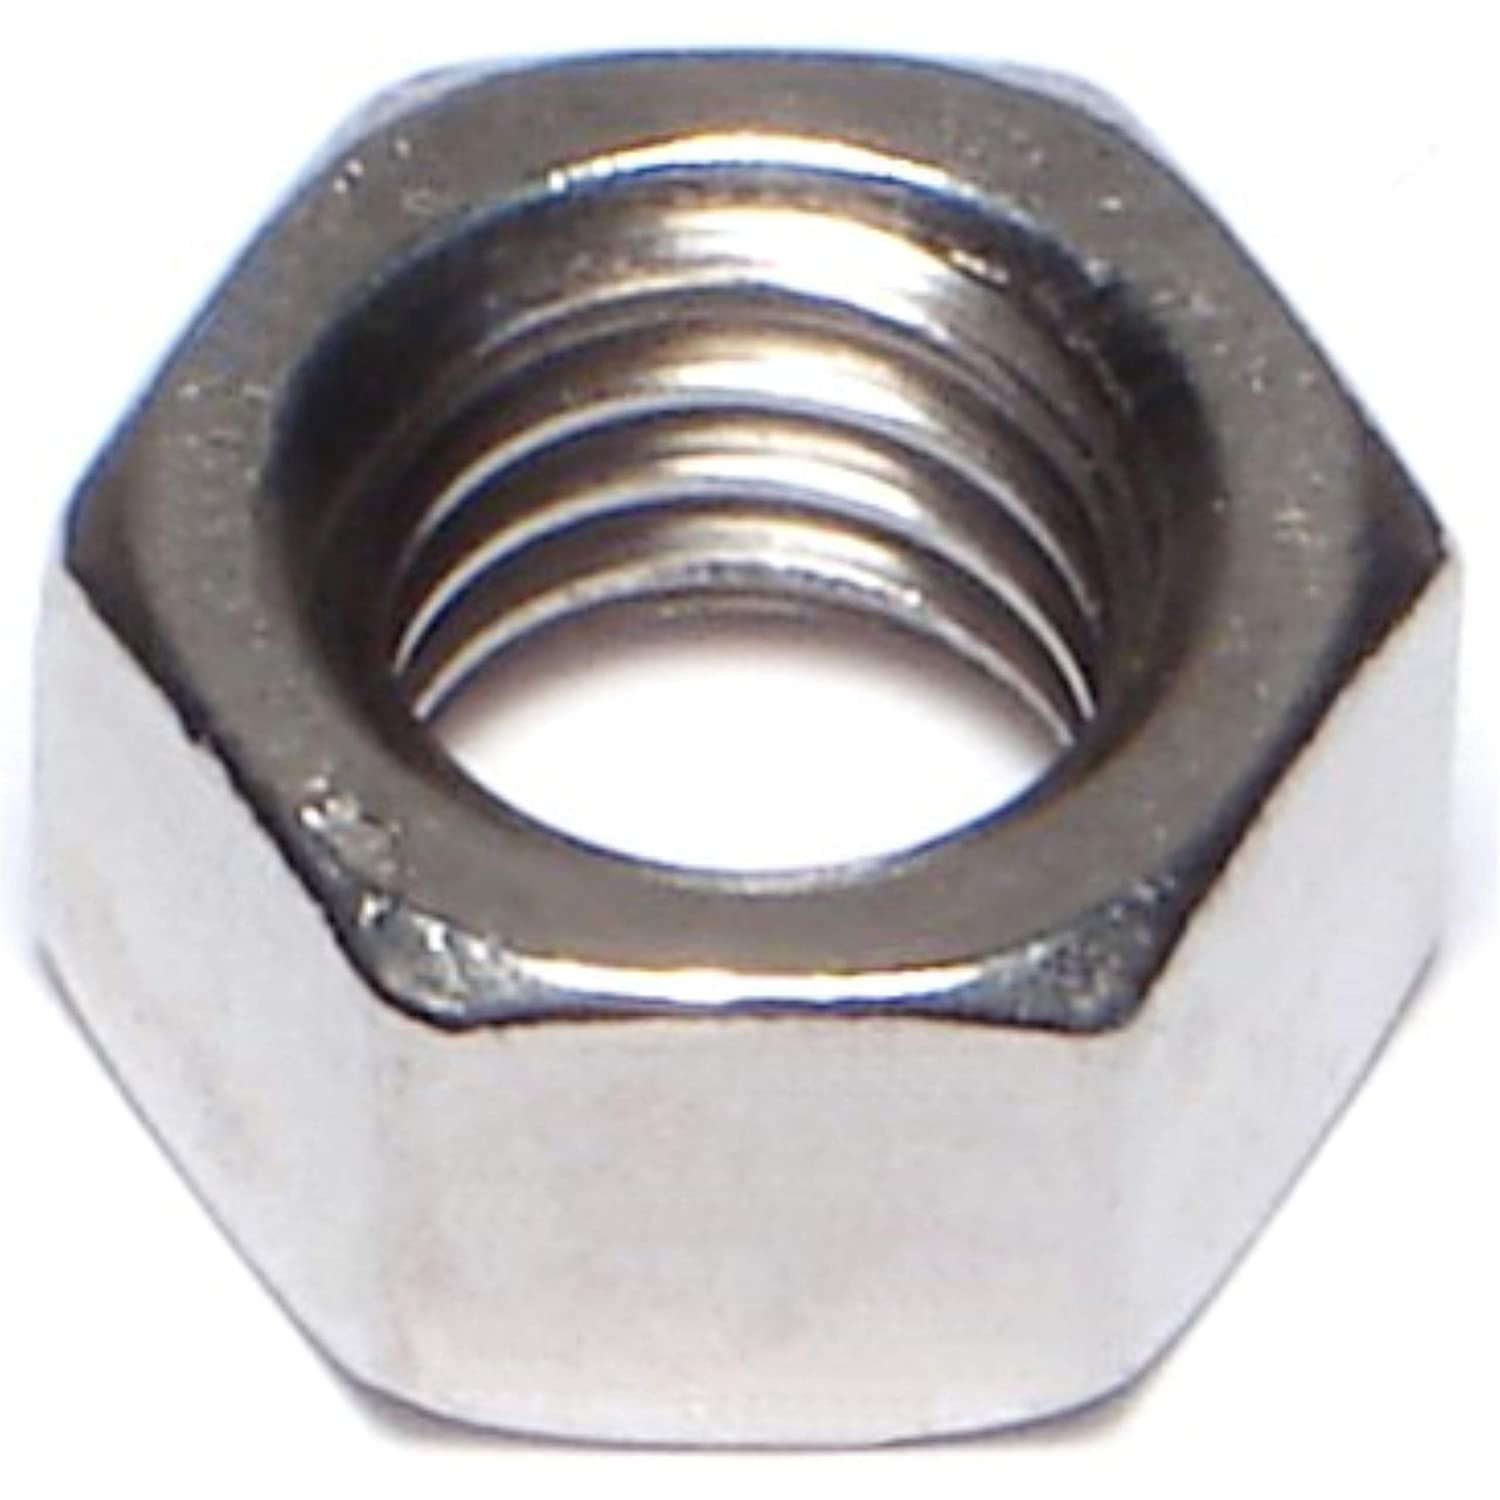 Hard-to-Find Fastener 014973181246 Coarse Finished Hex Nuts 3//8-16 Piece-50